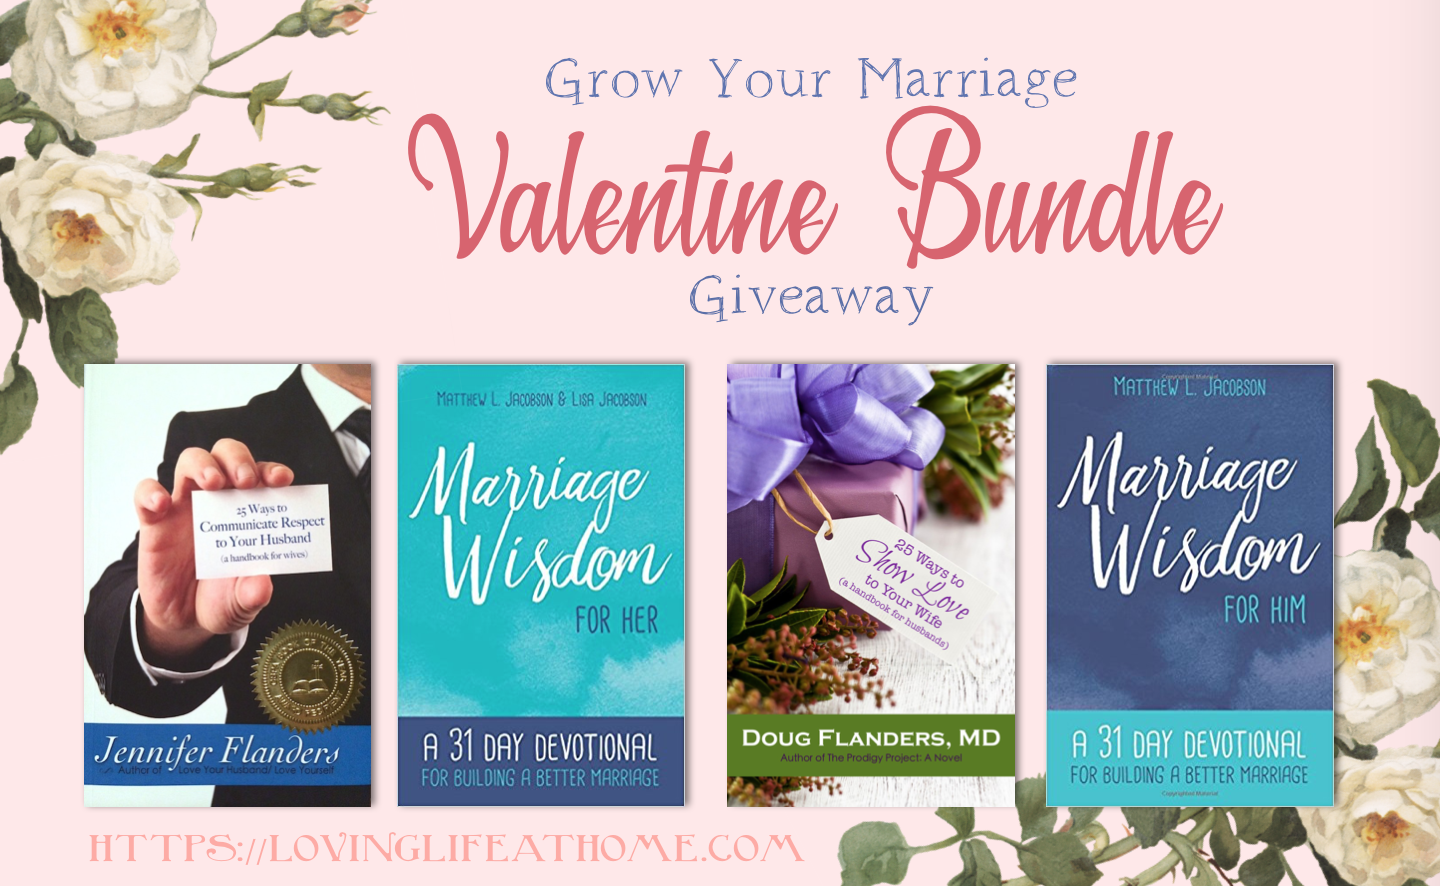 Grow Your Marriage Valentine Bundle Giveaway - Enter today!